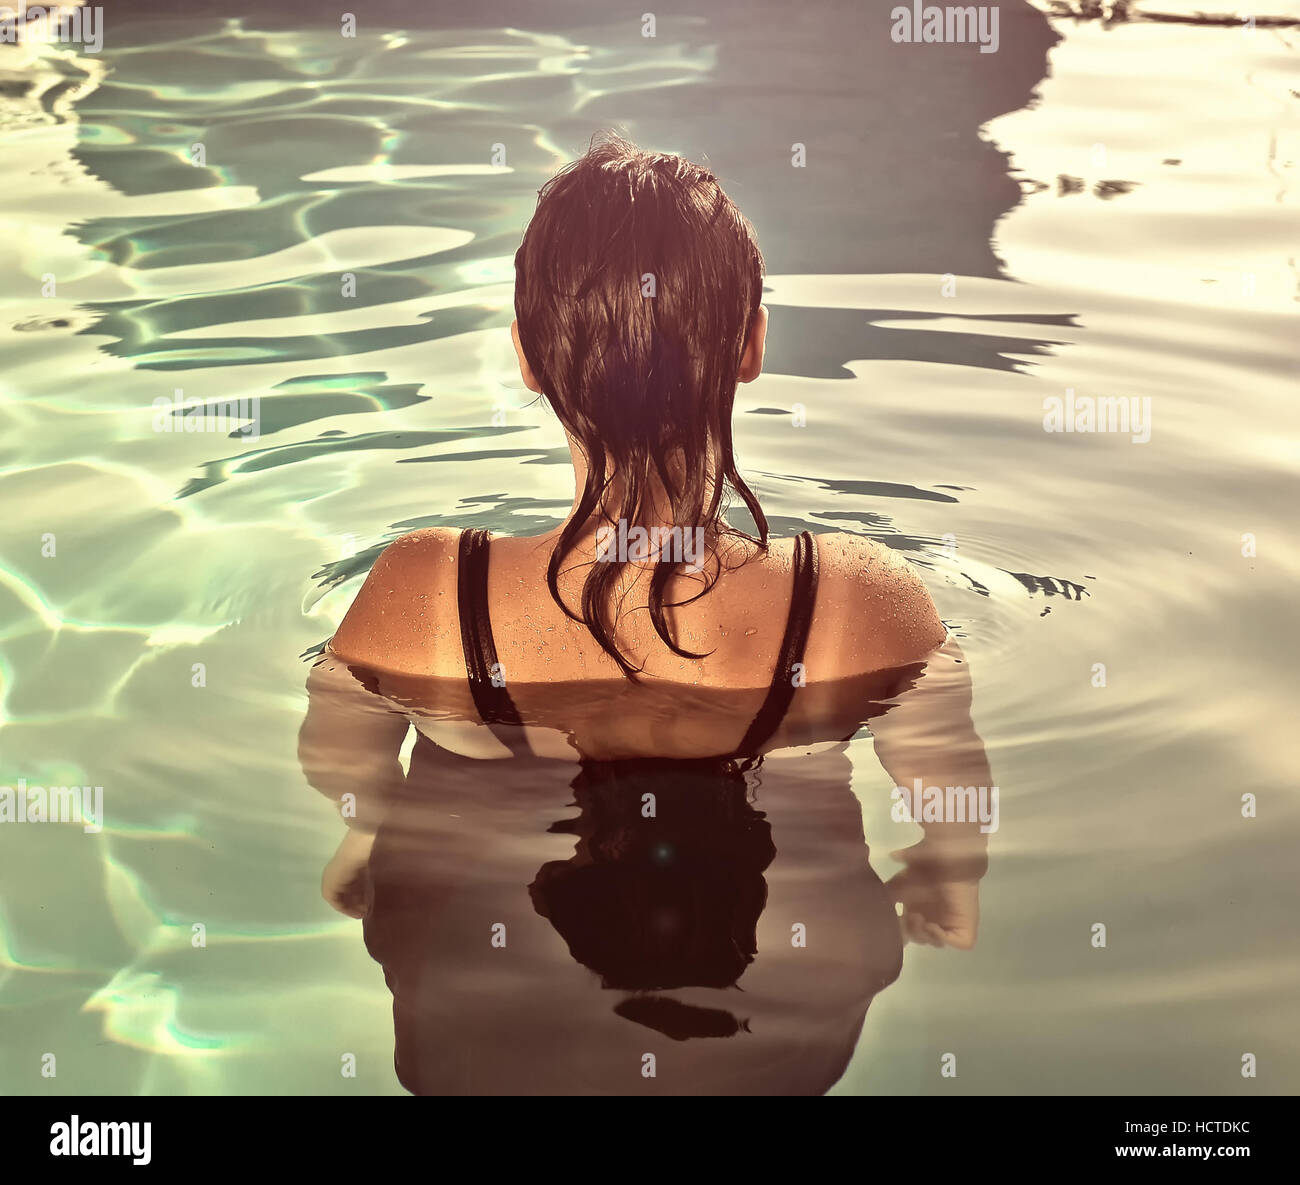 Girl swimming underwater in pool Banque D'Images